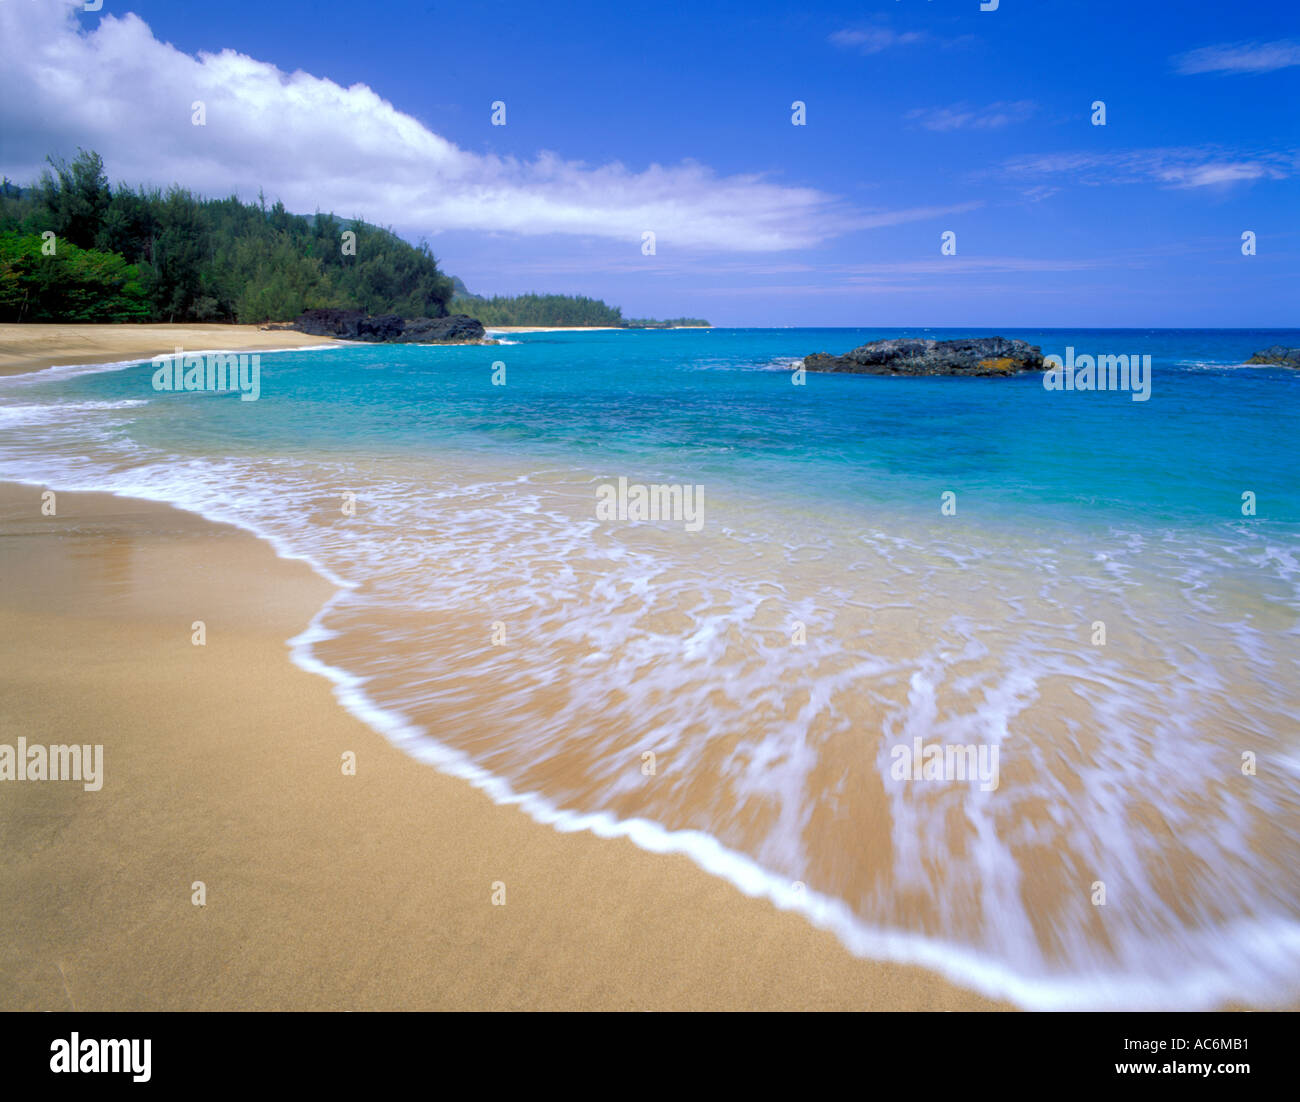 Kauai Beaches: Kauai, HI: Blue Waters And Gentle Surf Of Lumahai Beach